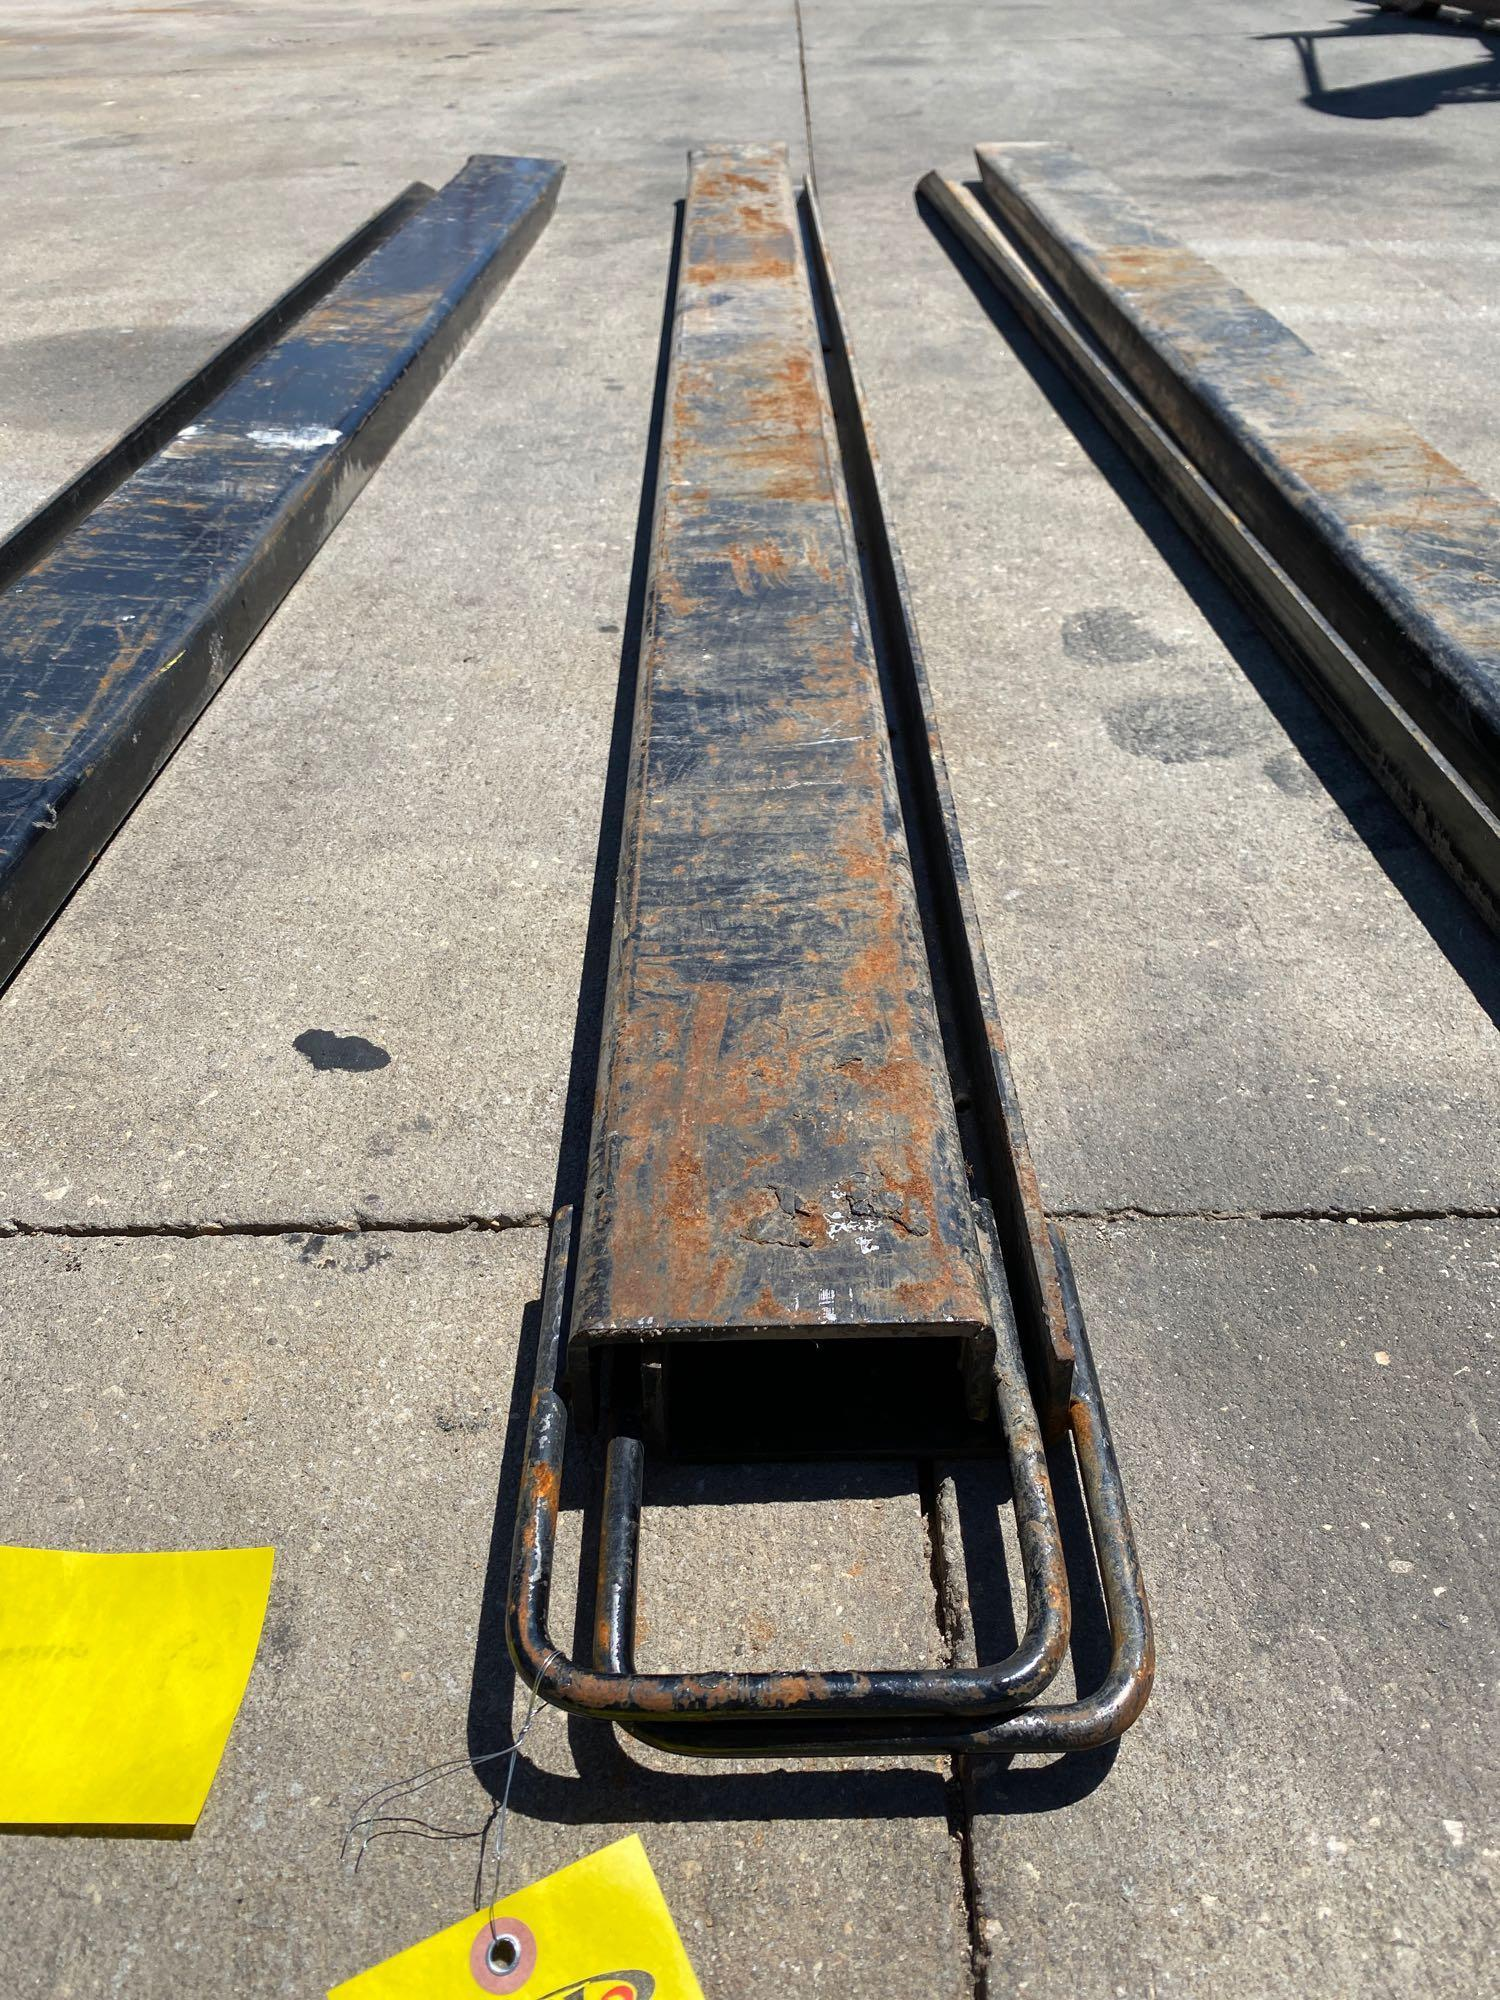 PAIR OF 7' SLIDE ON FORK EXTENSIONS - Image 5 of 5